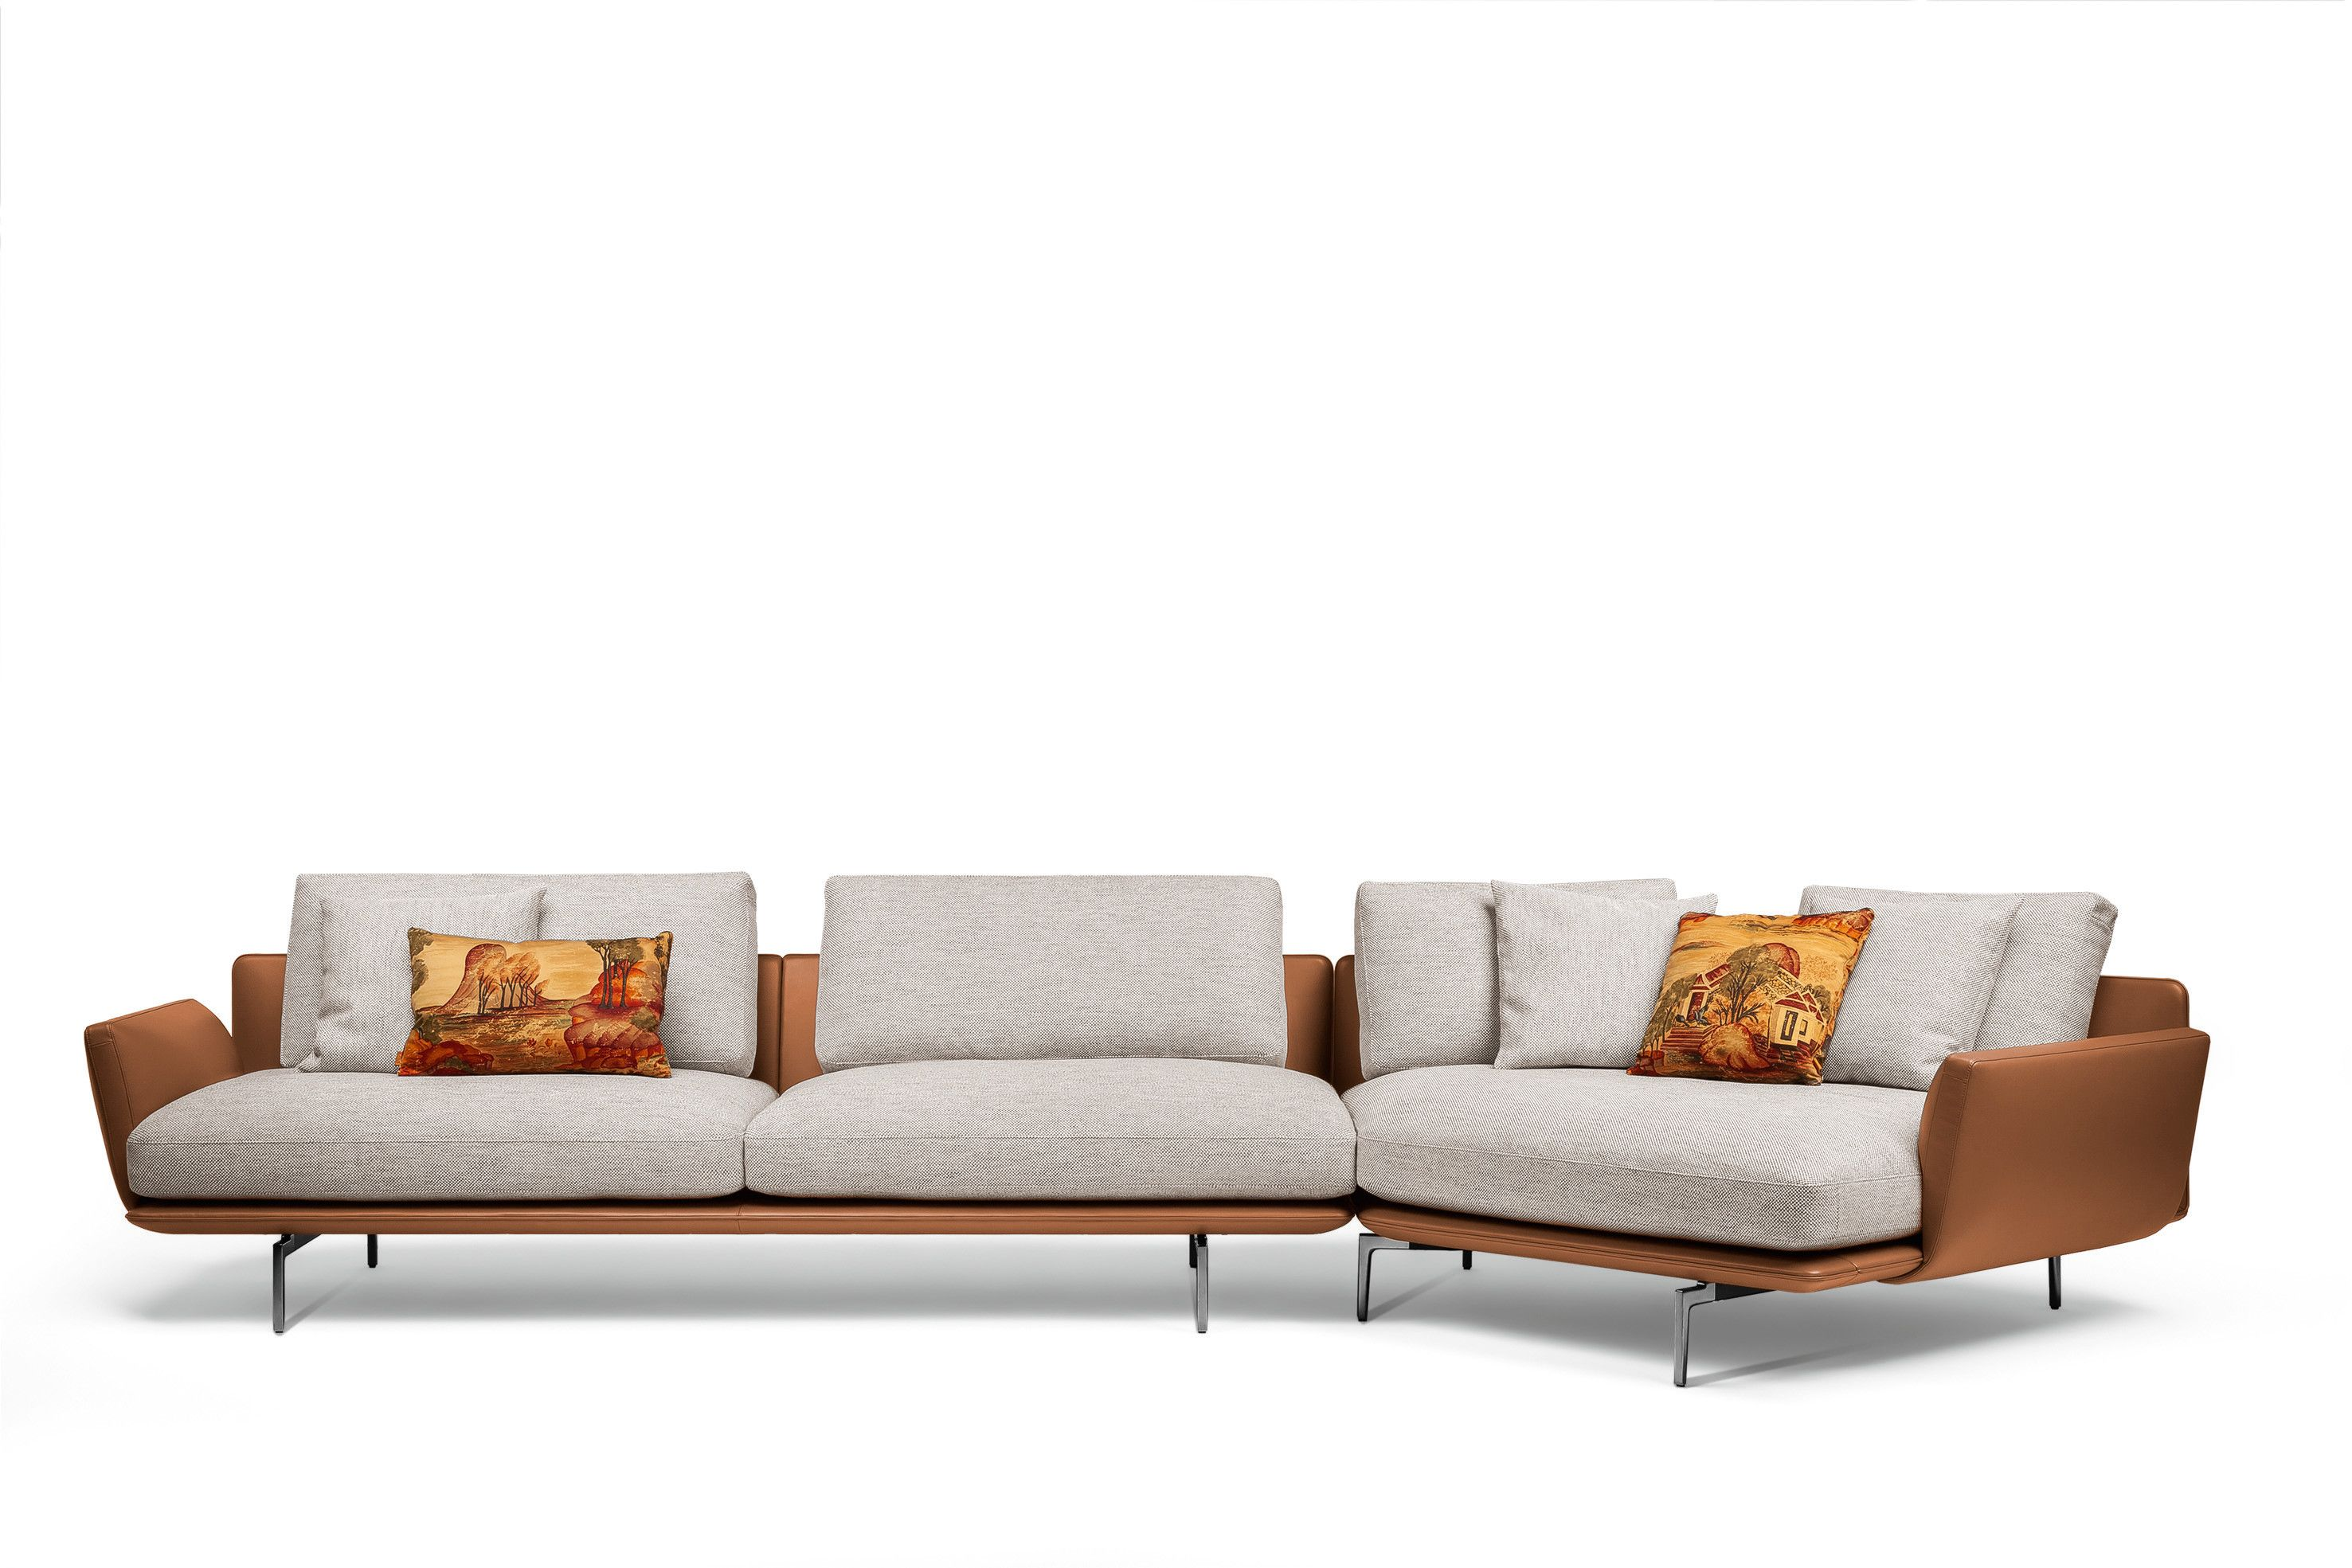 Get Back Sectional Sofa The Collection Sofa And Armchairs Collection By Poltrona Frau Design Ludovica Roberto Palomb Sectional Sofa Fabric Sofa Design Sofa